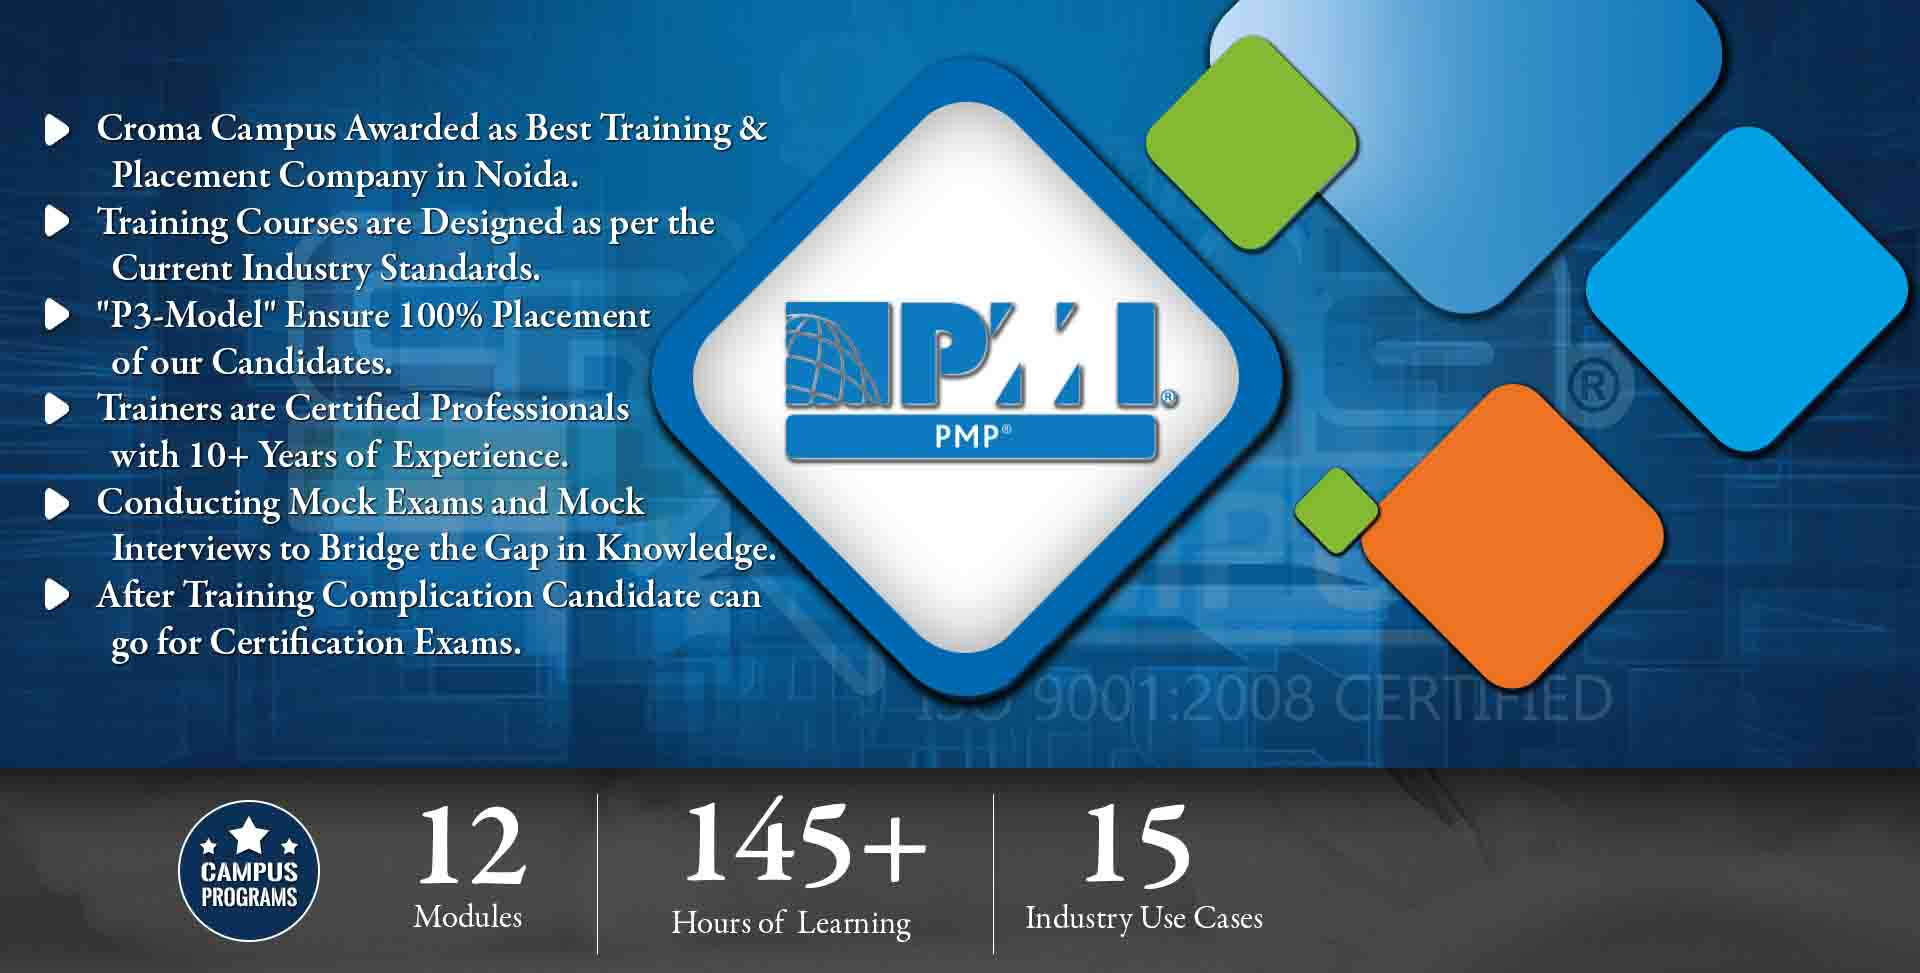 PMP Training in Noida- Croma Campus